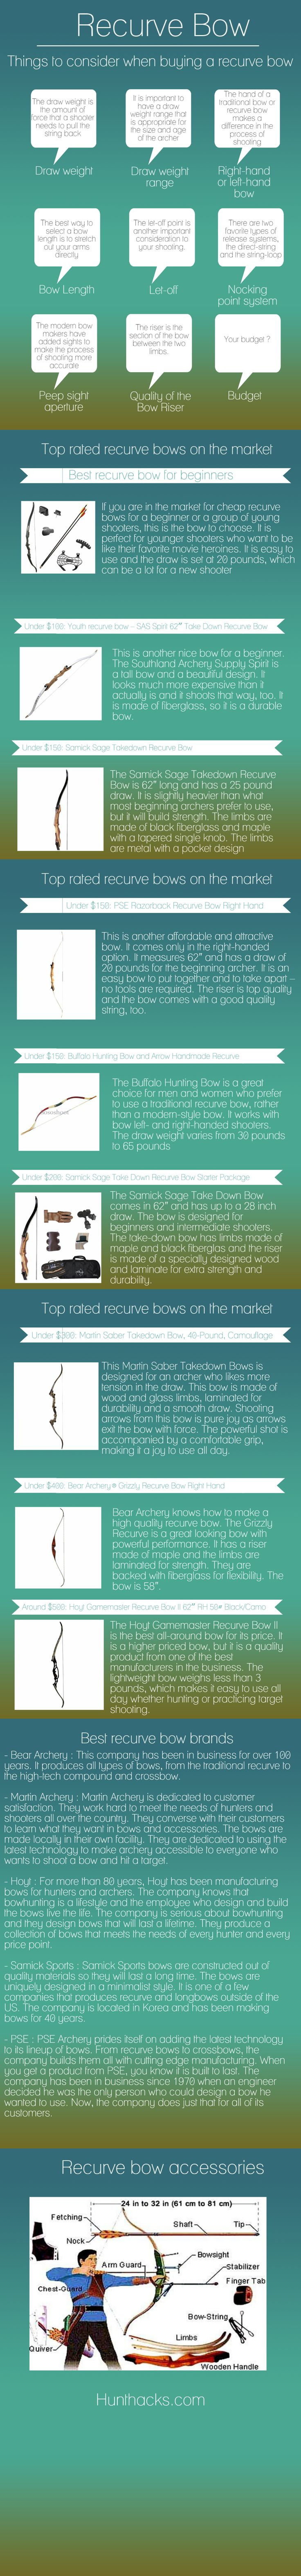 [Infographic] Recurve Bow buyer Get Recurve Bows at https://www.etsy.com/shop/ArcherySky